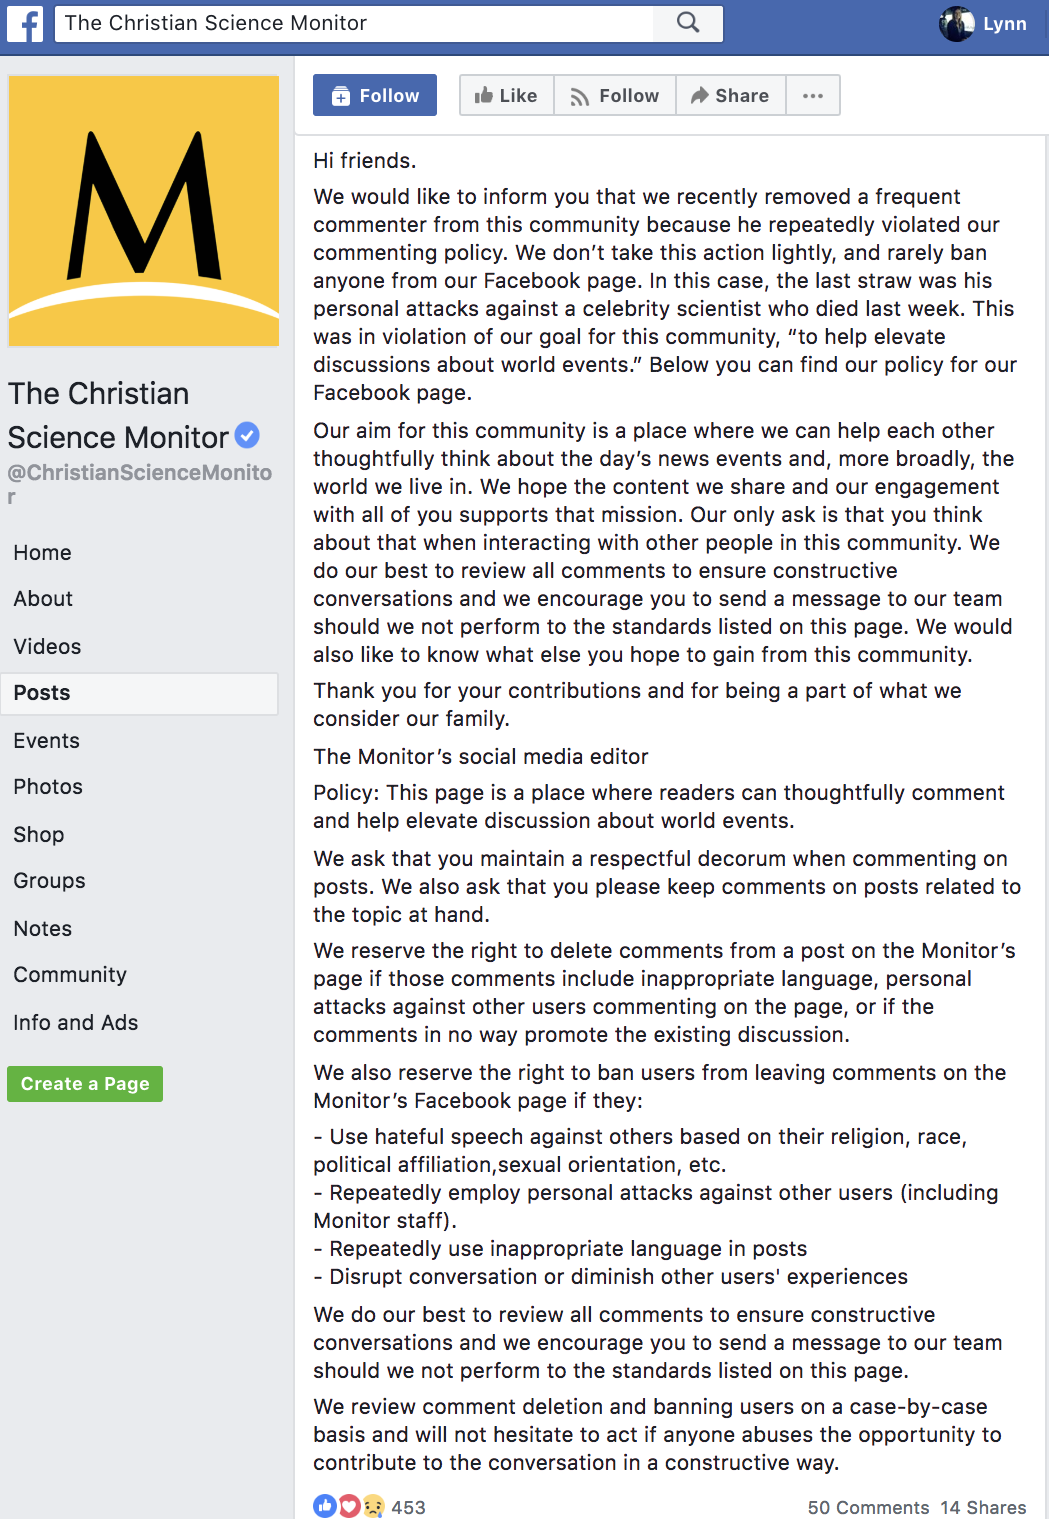 Screenshot from The Christian Science Monitor's Facebook page, explaining why a frequent commenter was banned.